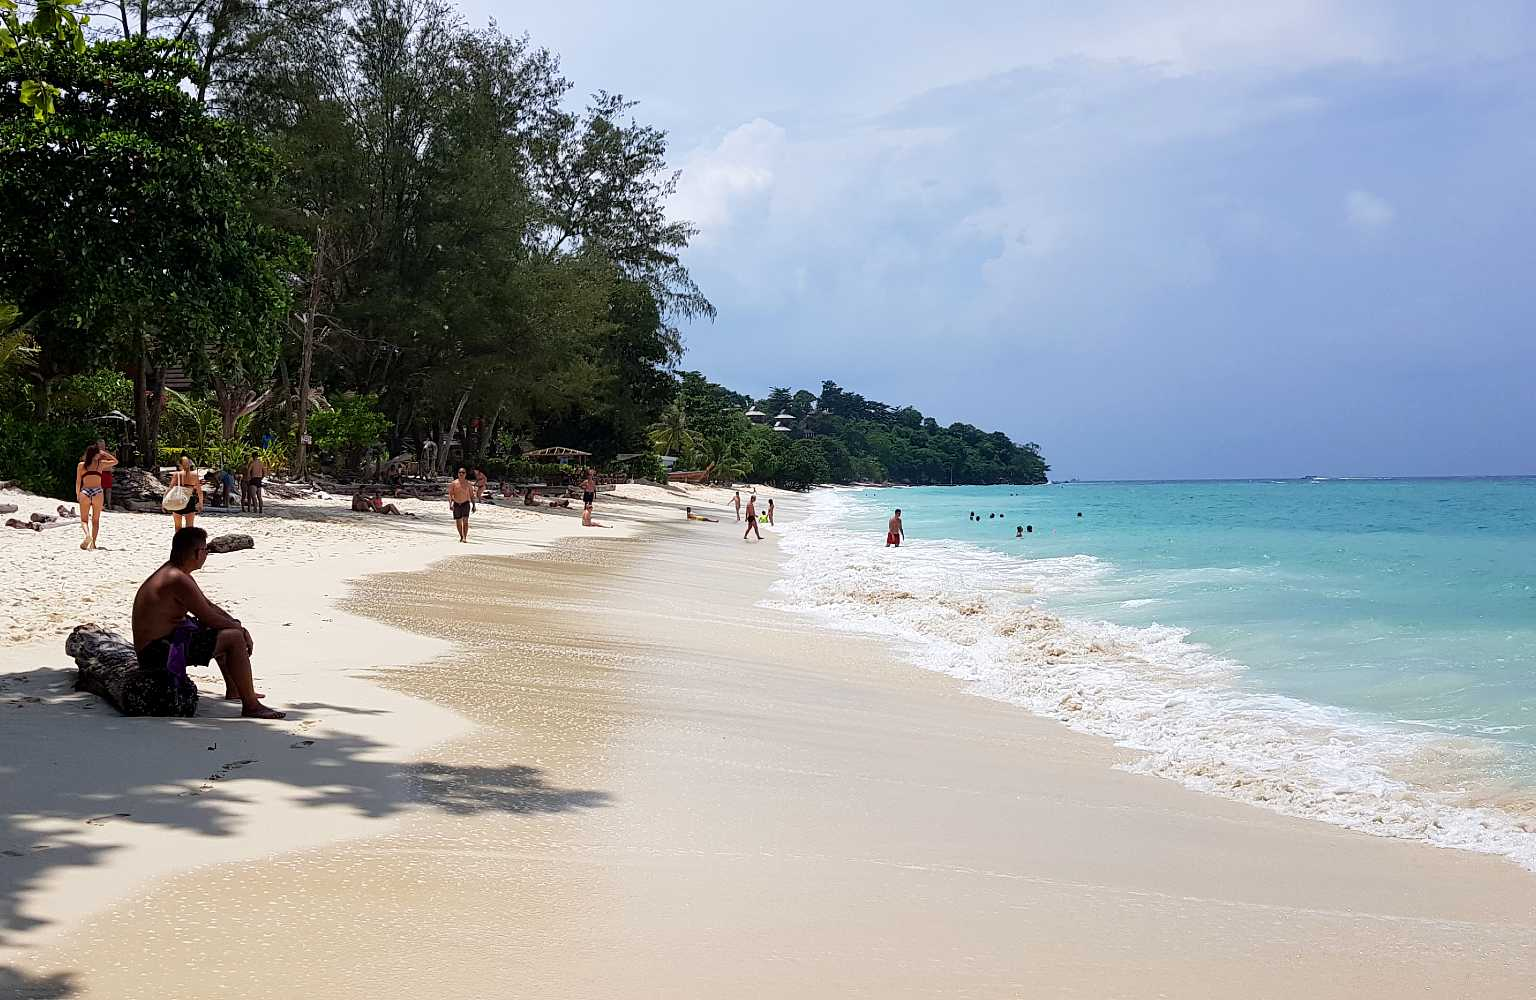 Long Beach, people sit on the white beach and swim in the blue sea on Koh Phi Phi